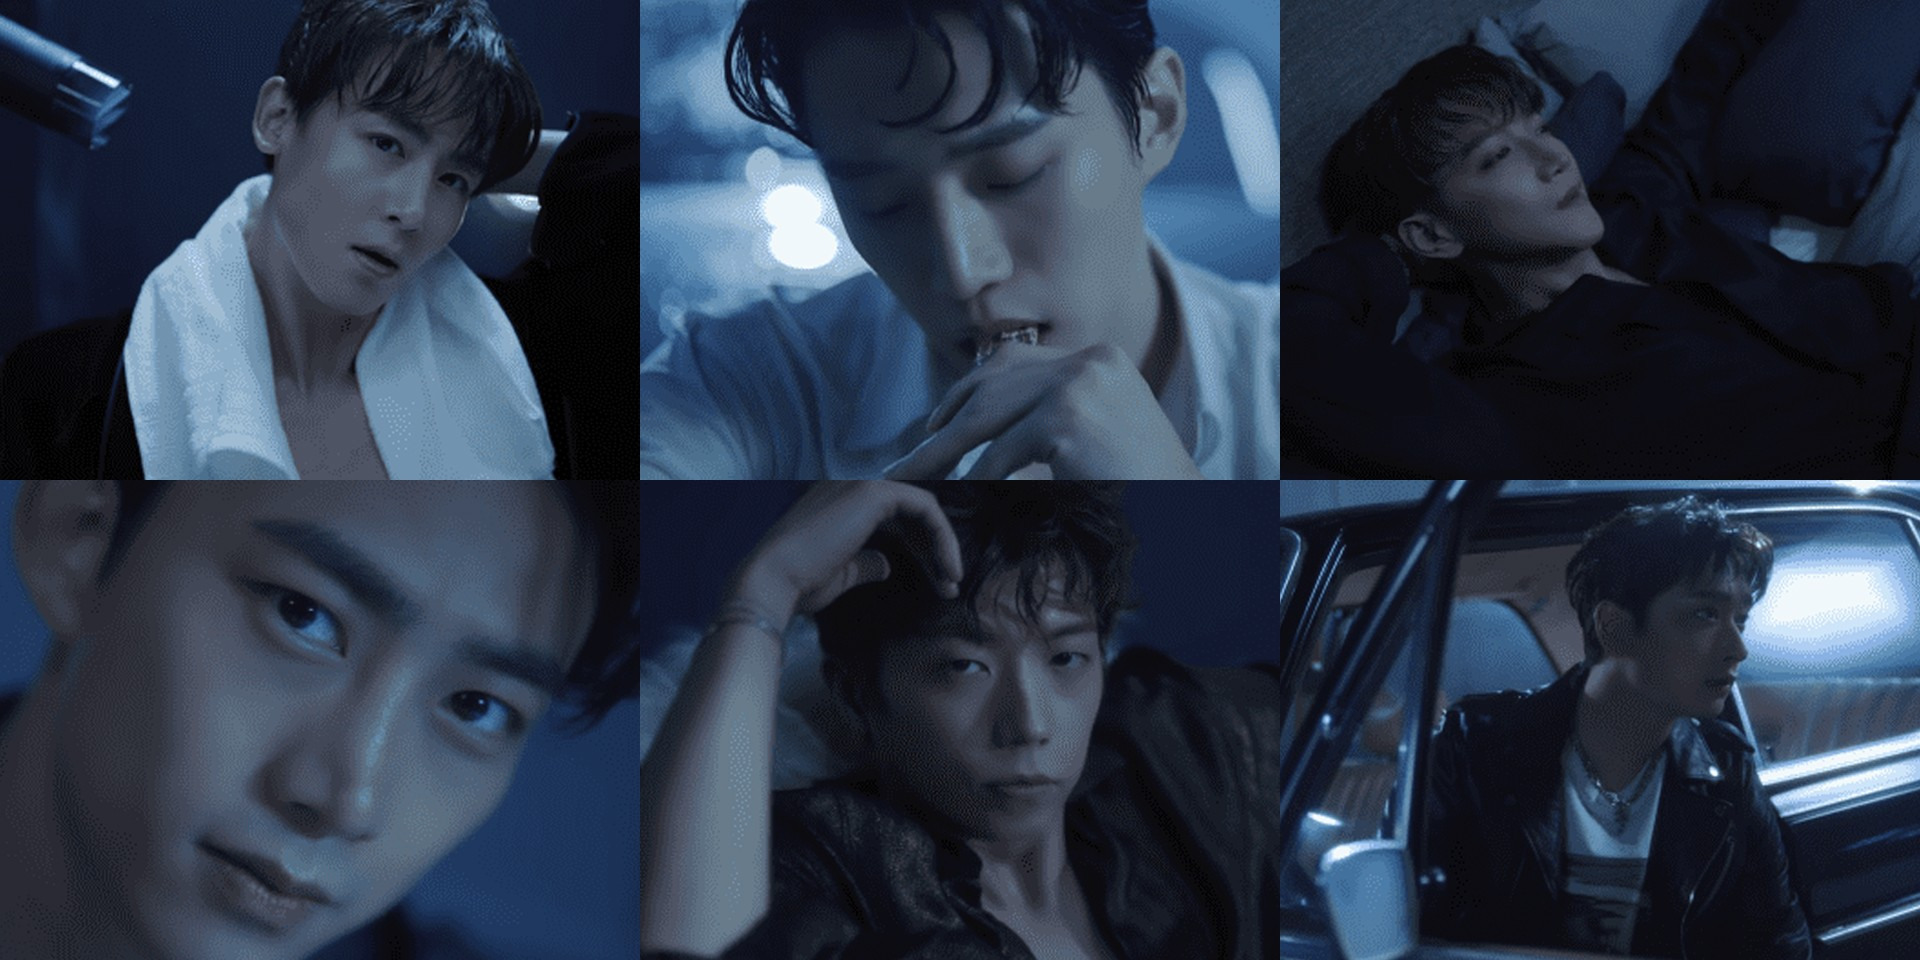 2PM reveal tracklist for new album, 'MUST'